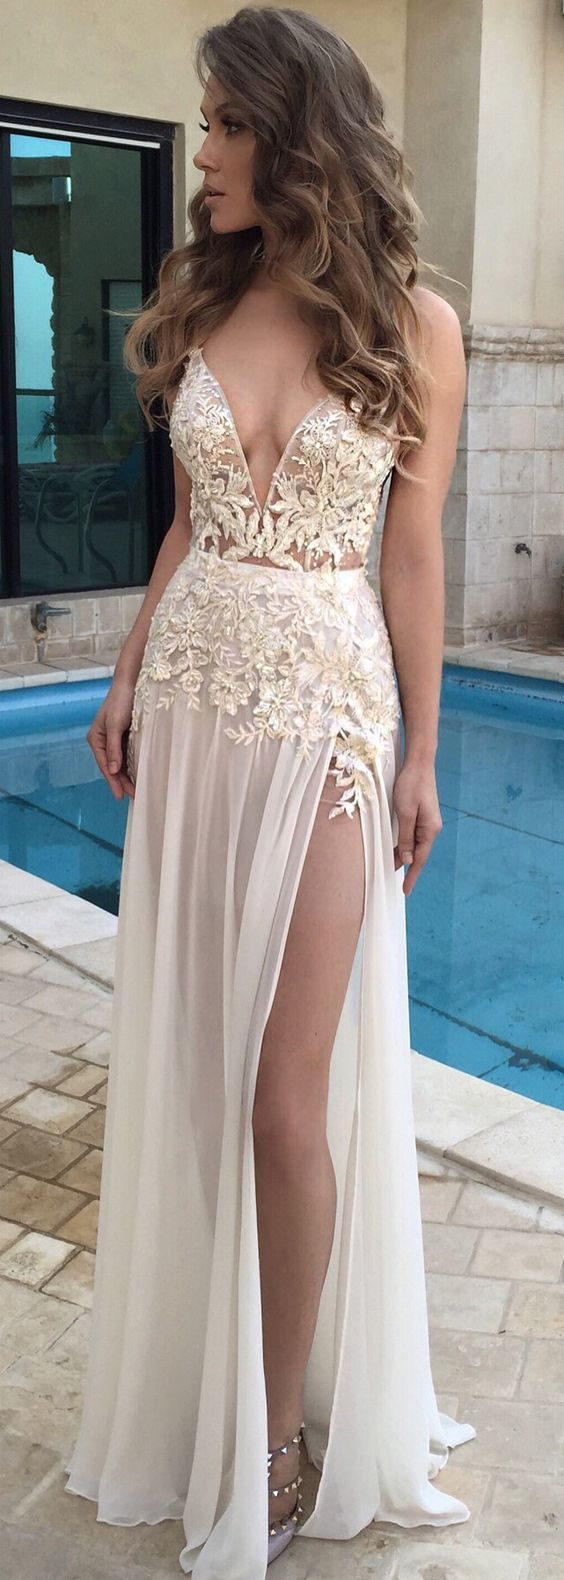 Lace prom dress charming prom dressparty prom dresses from